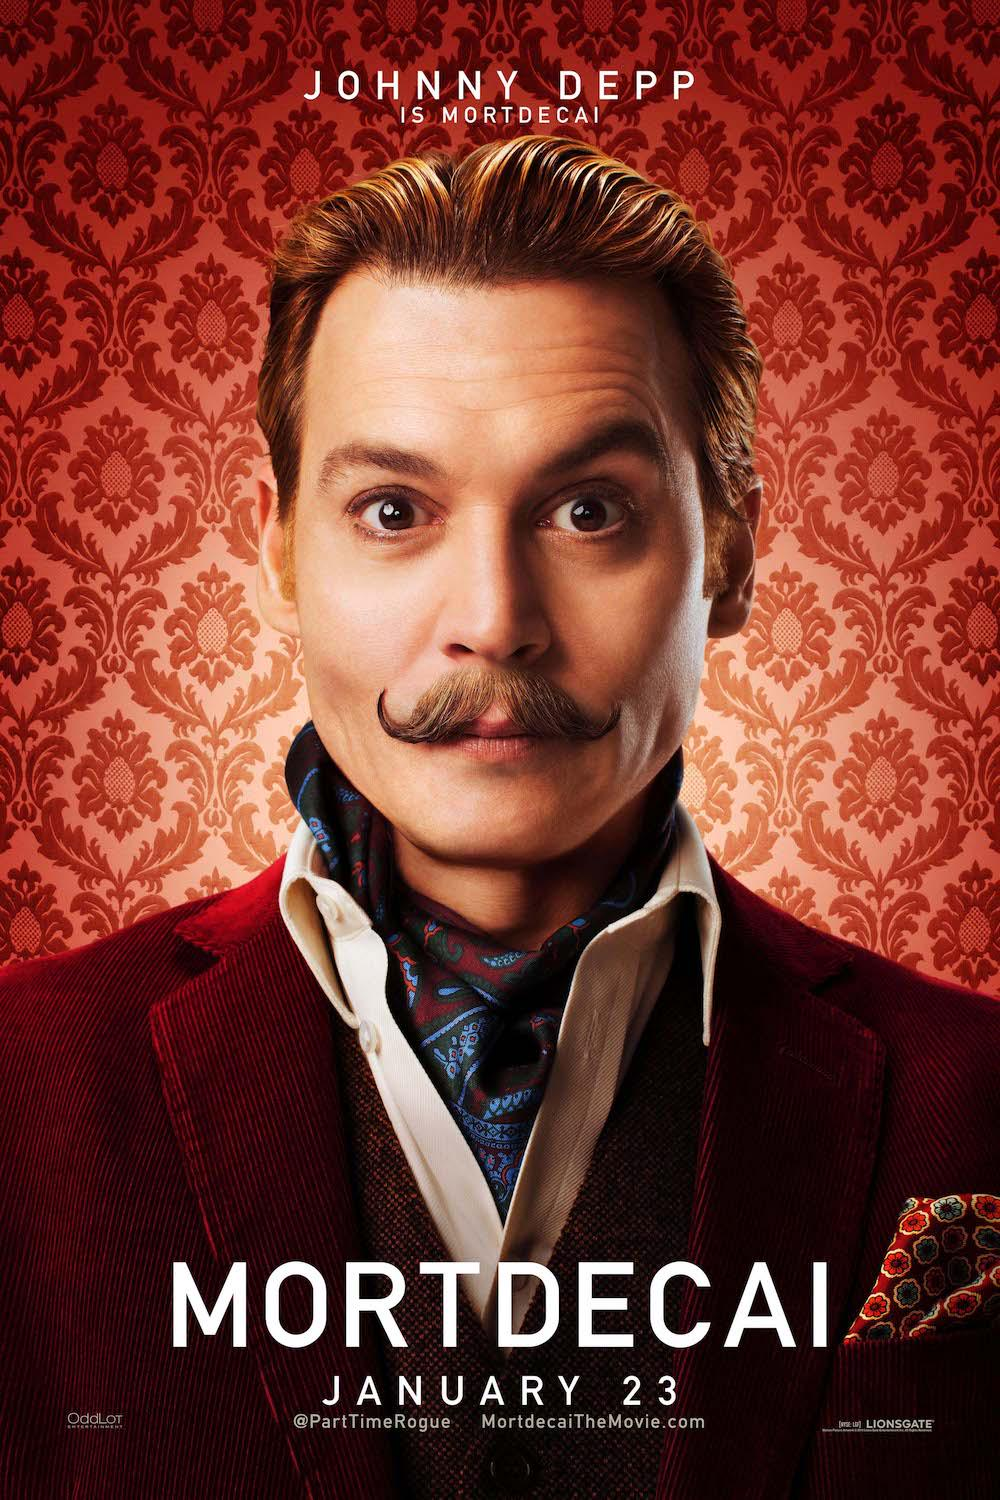 #MORTDECAI is out Jan 23 & we've got 5 pairs of tickets to the Premiere in London on Jan 19 ! RT to enter. http://t.co/5chku13P32